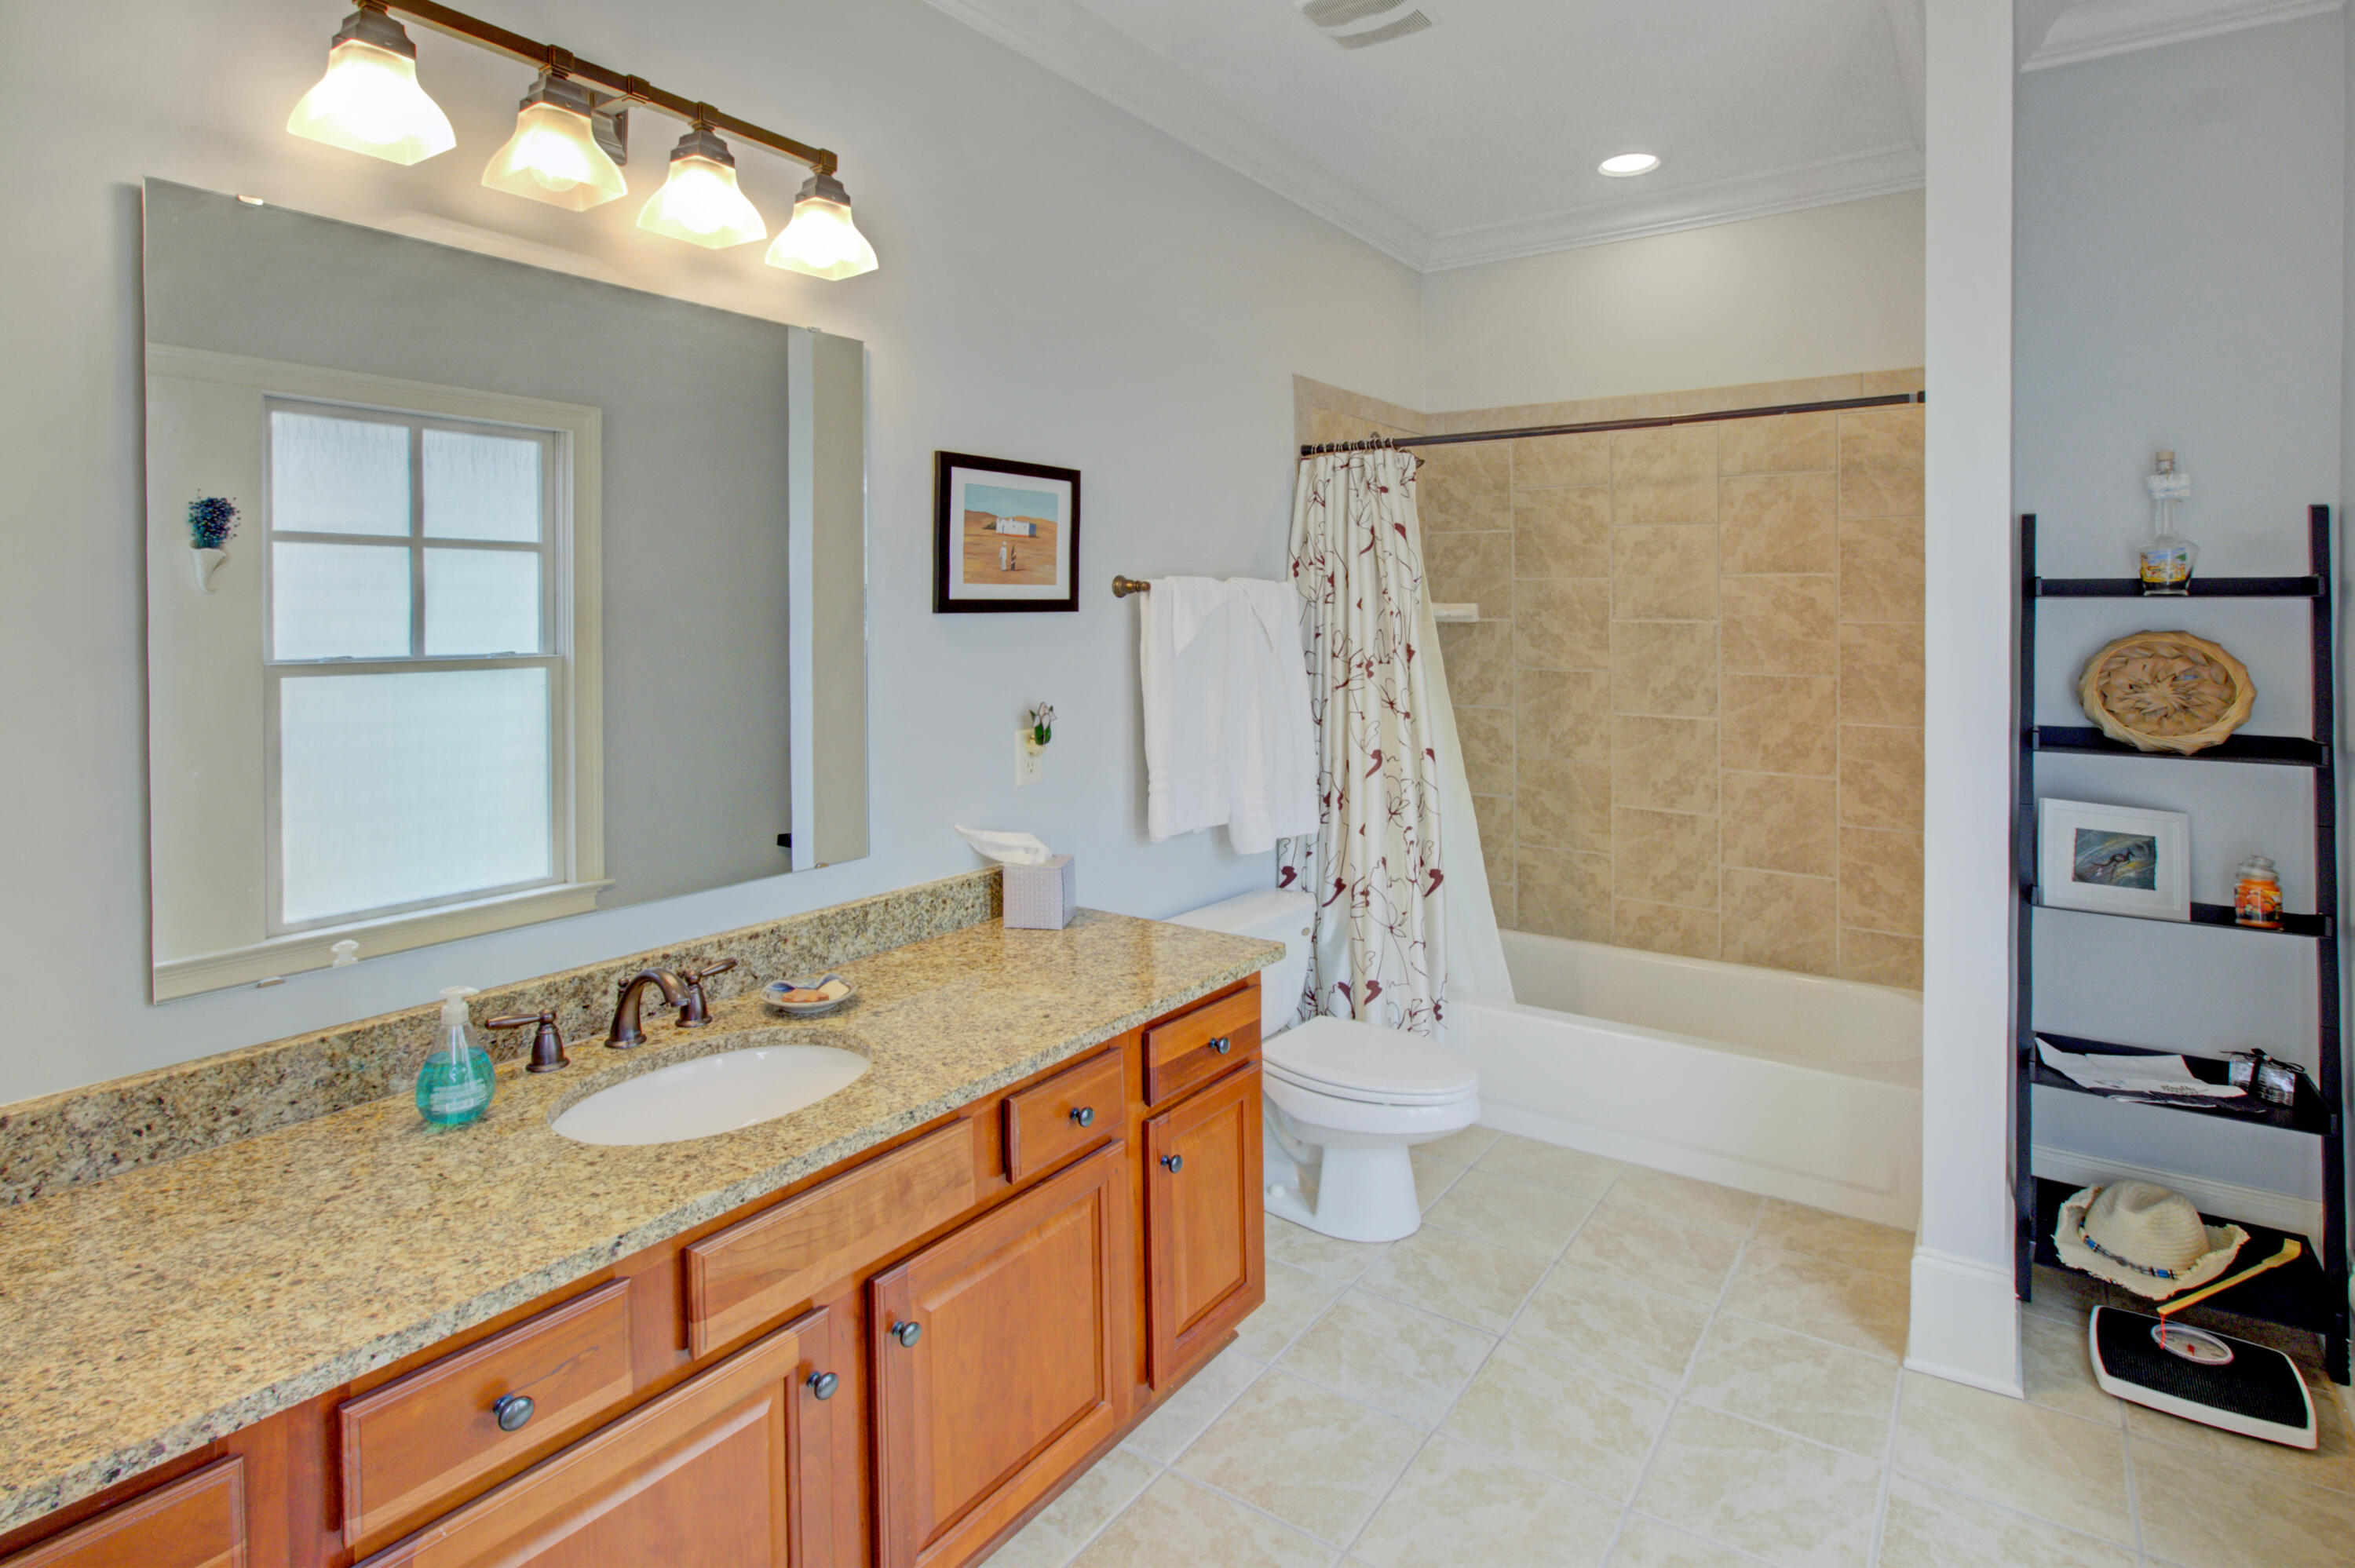 Watermark Homes For Sale - 1433 Lettered Olive, Mount Pleasant, SC - 2